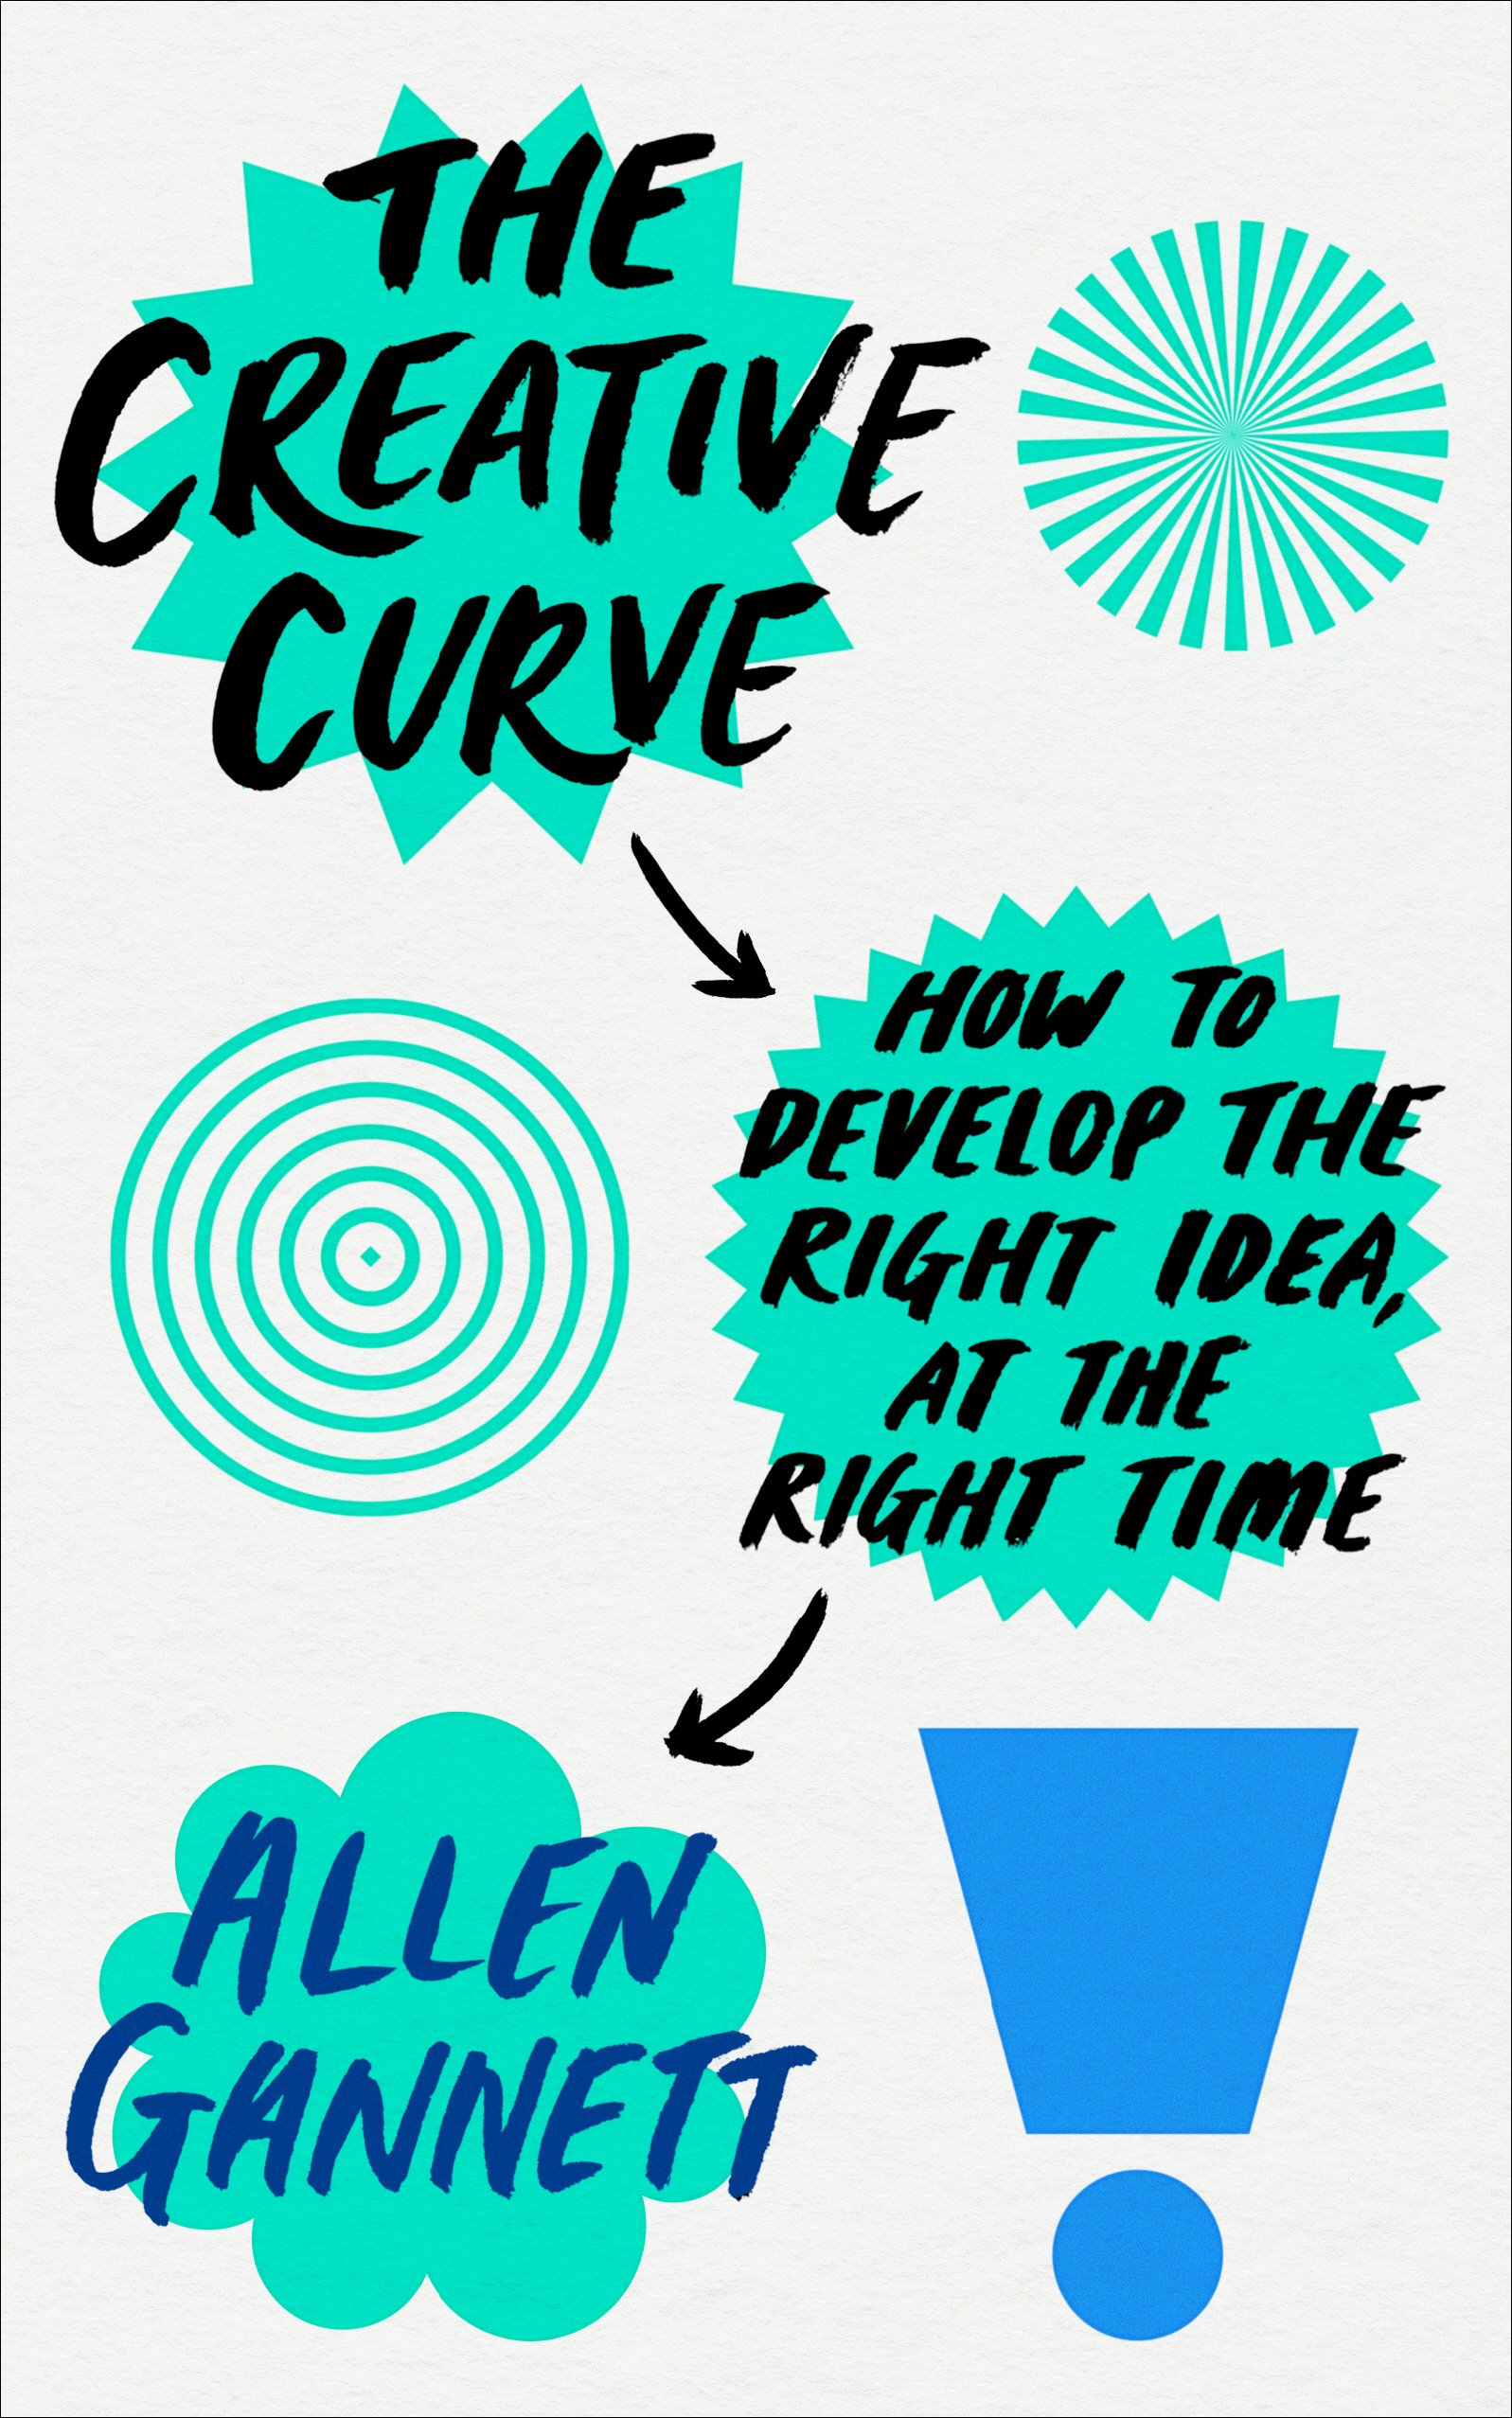 The Creative Curve: How to Develop the Right Idea, at the Right Time ...